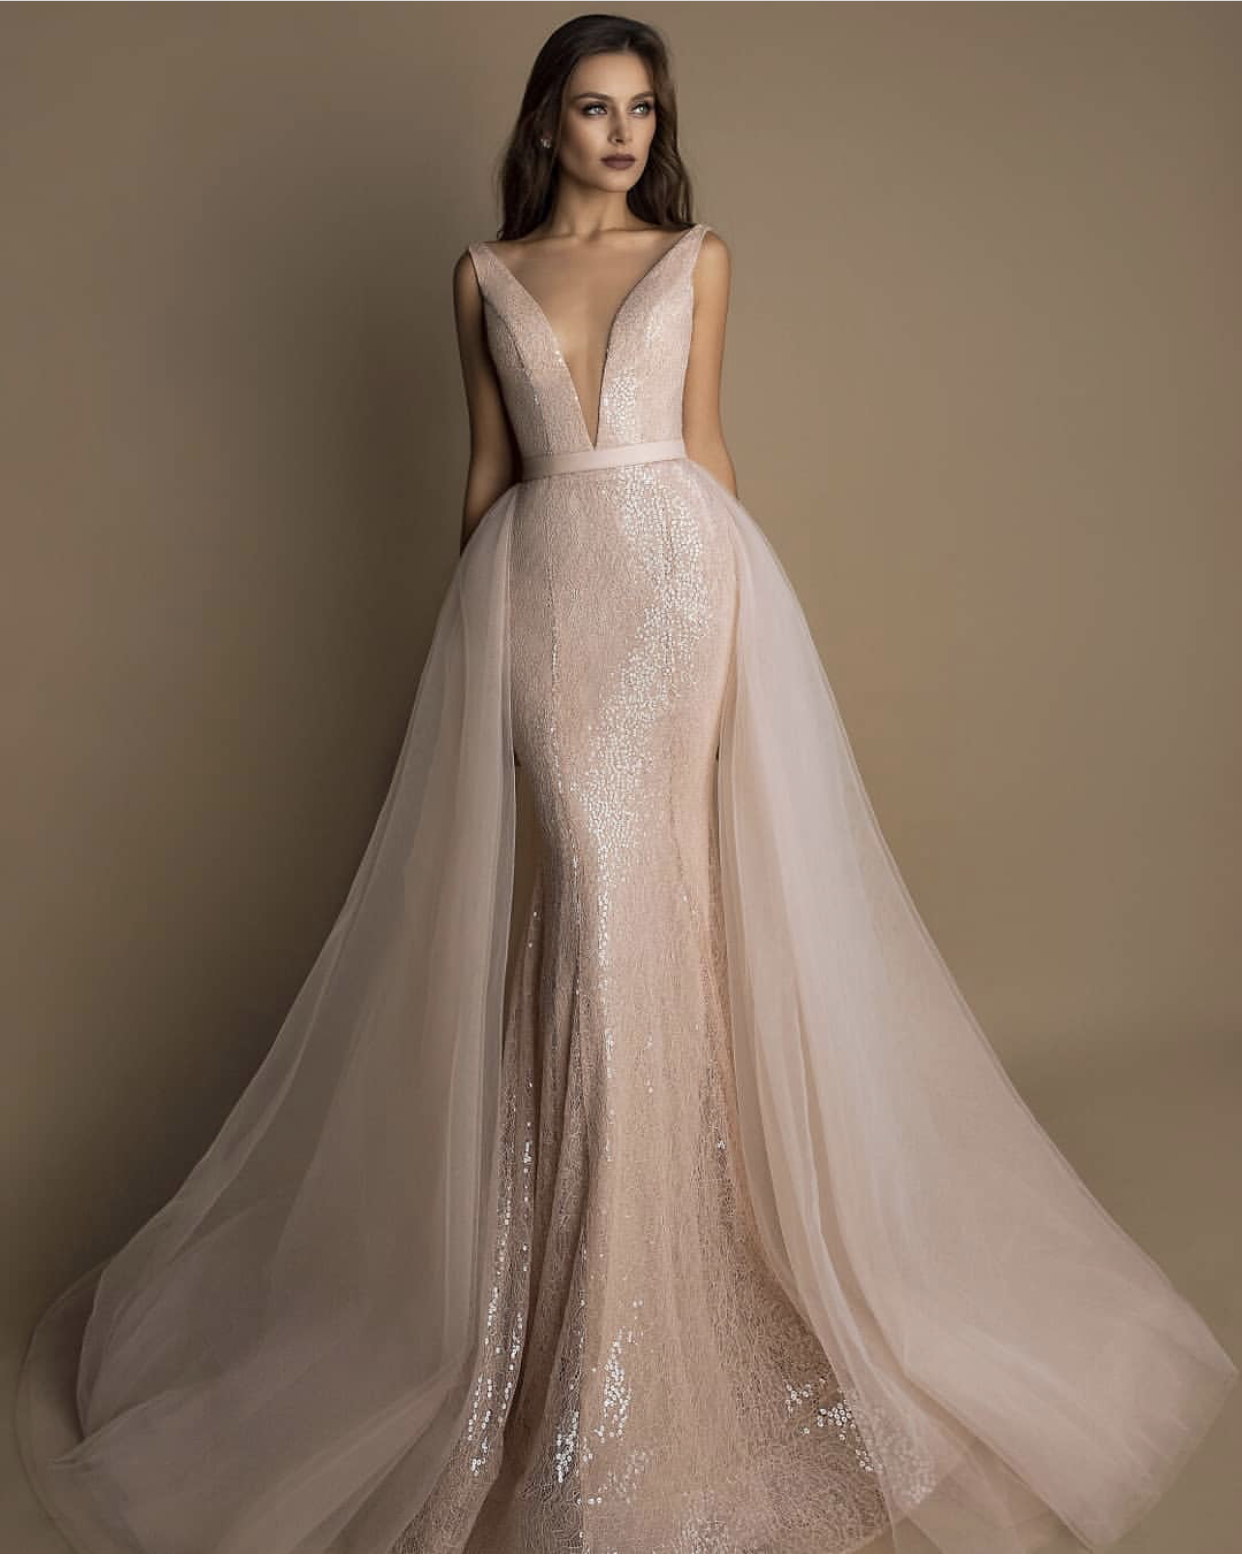 69c5e1a2e7ed 23 Colored Wedding Dress Ideas for Unique Brides